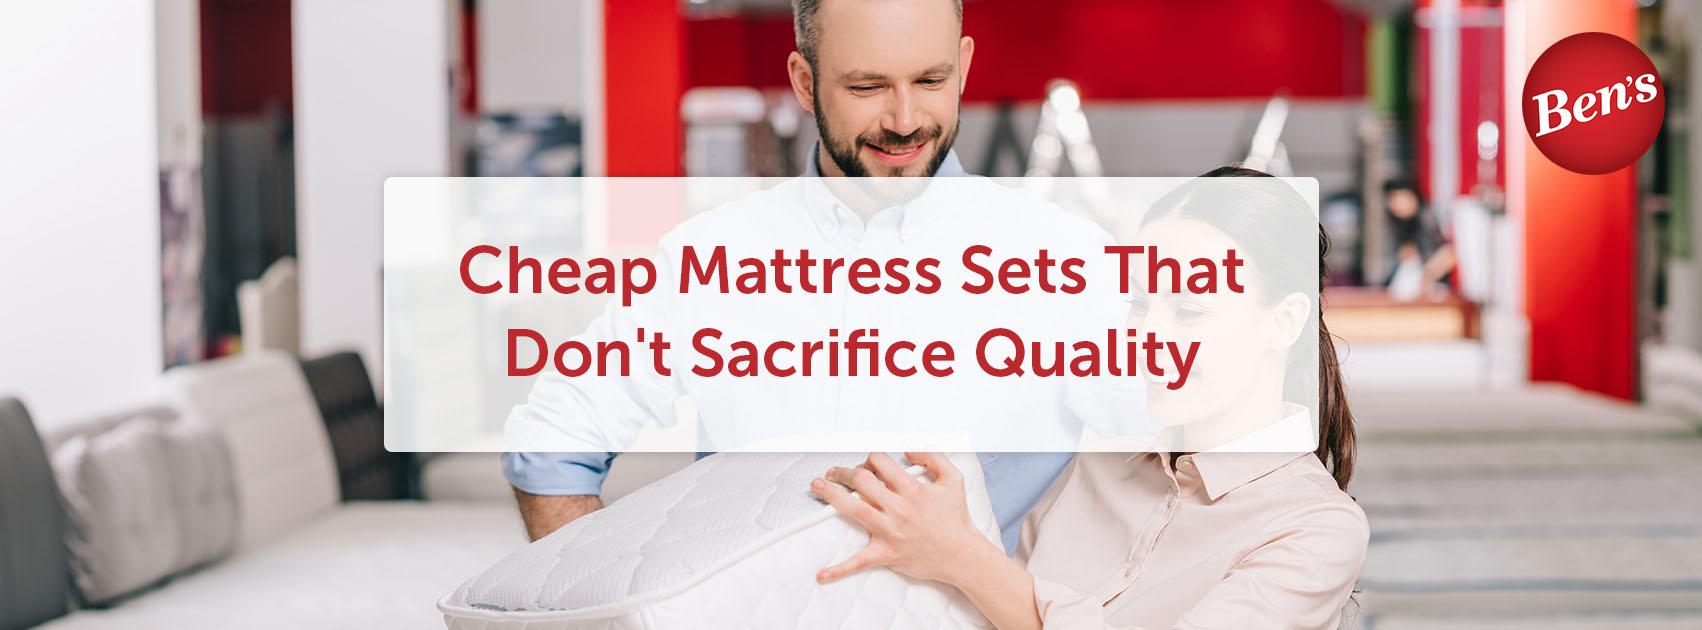 Woman shopping for mattress sets in a retail store.